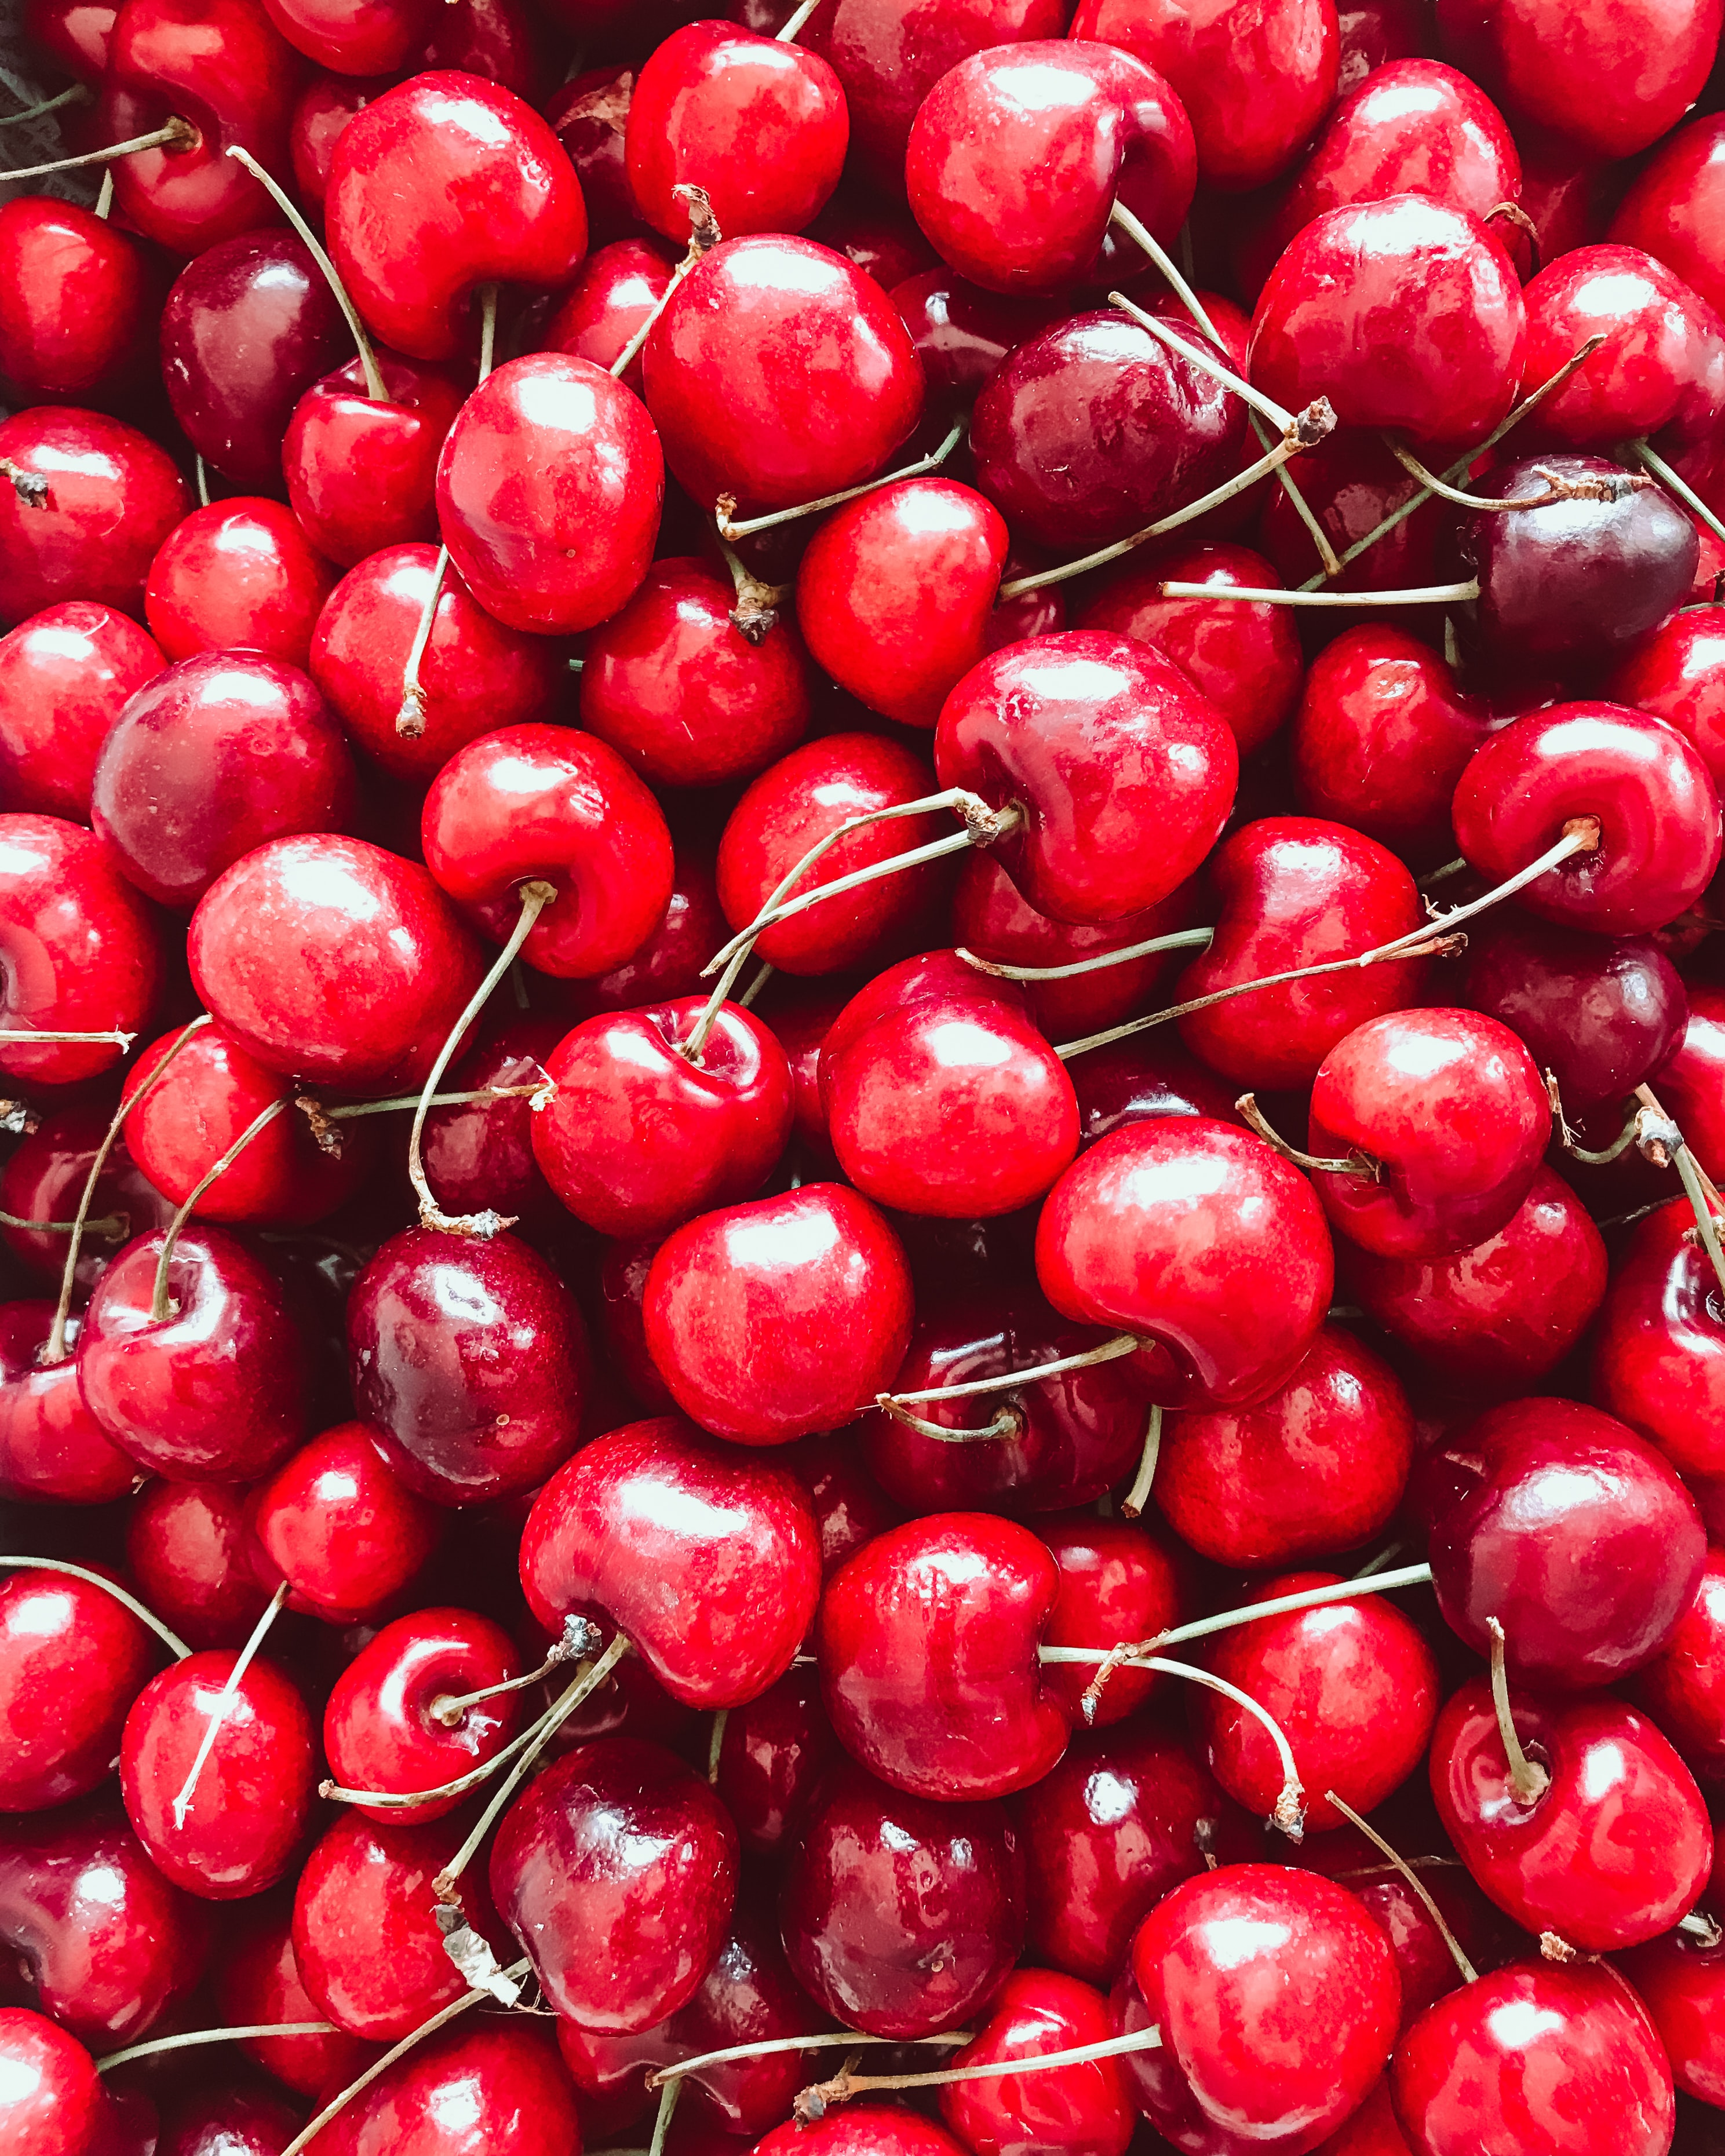 89999 download wallpaper Food, Berries, Ripe, Harvest, Cherries screensavers and pictures for free